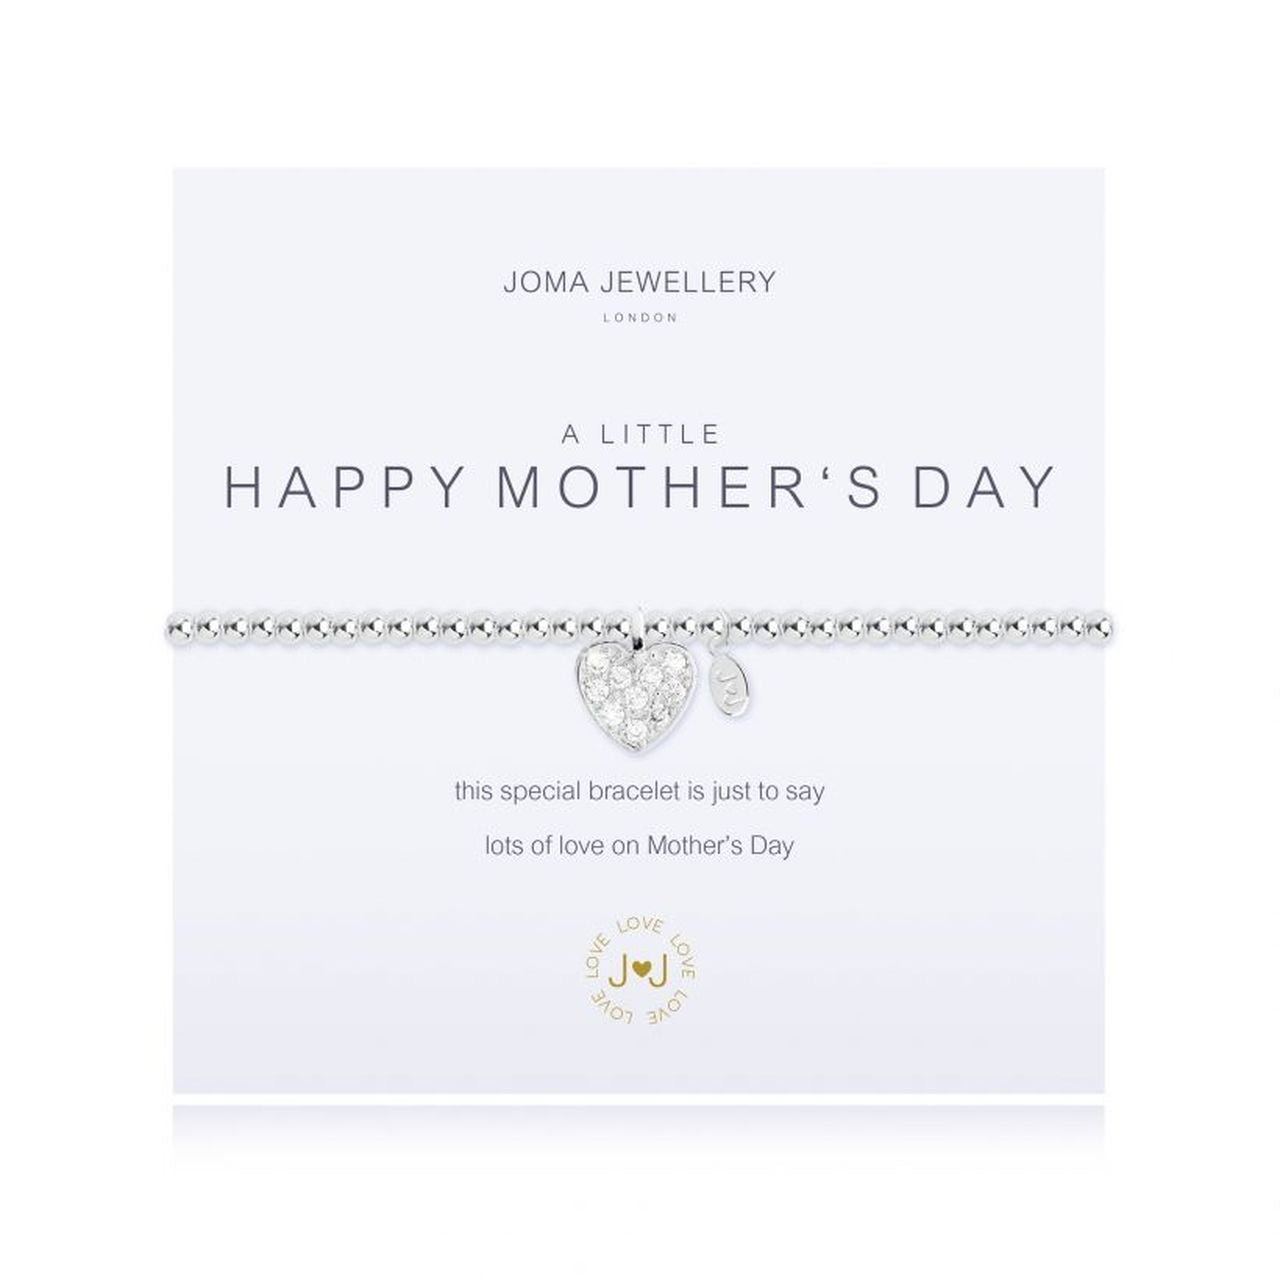 Joma Jewellery A Little Happy Mother's Day Bracelet